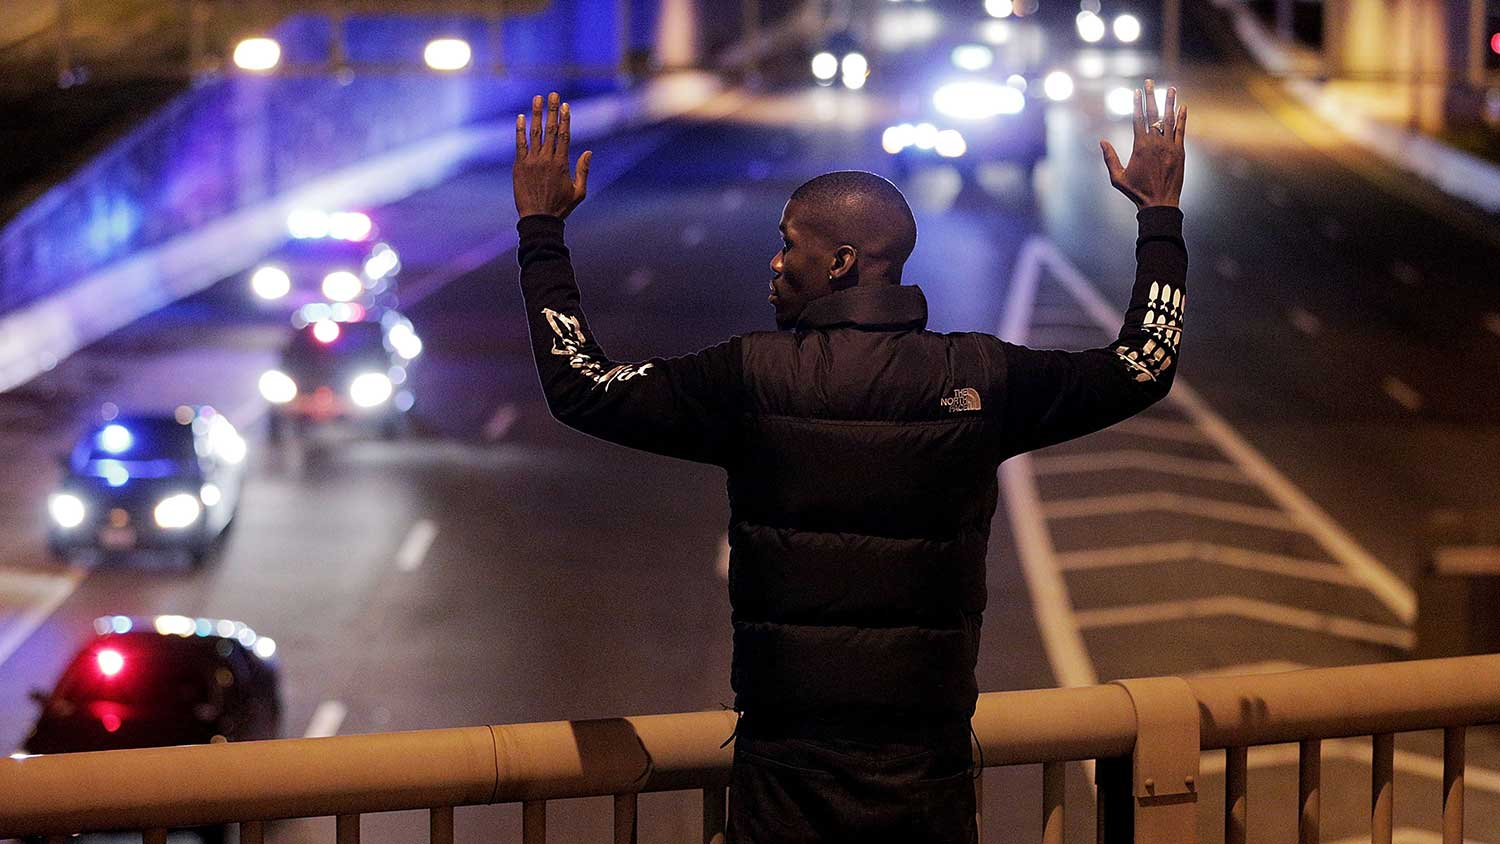 Shaun Reid raises his hands as police follow demonstrators off Highway I-395 during a protest following the grand jury's decision on Dec. 3, 2014, in Washington, D.C.